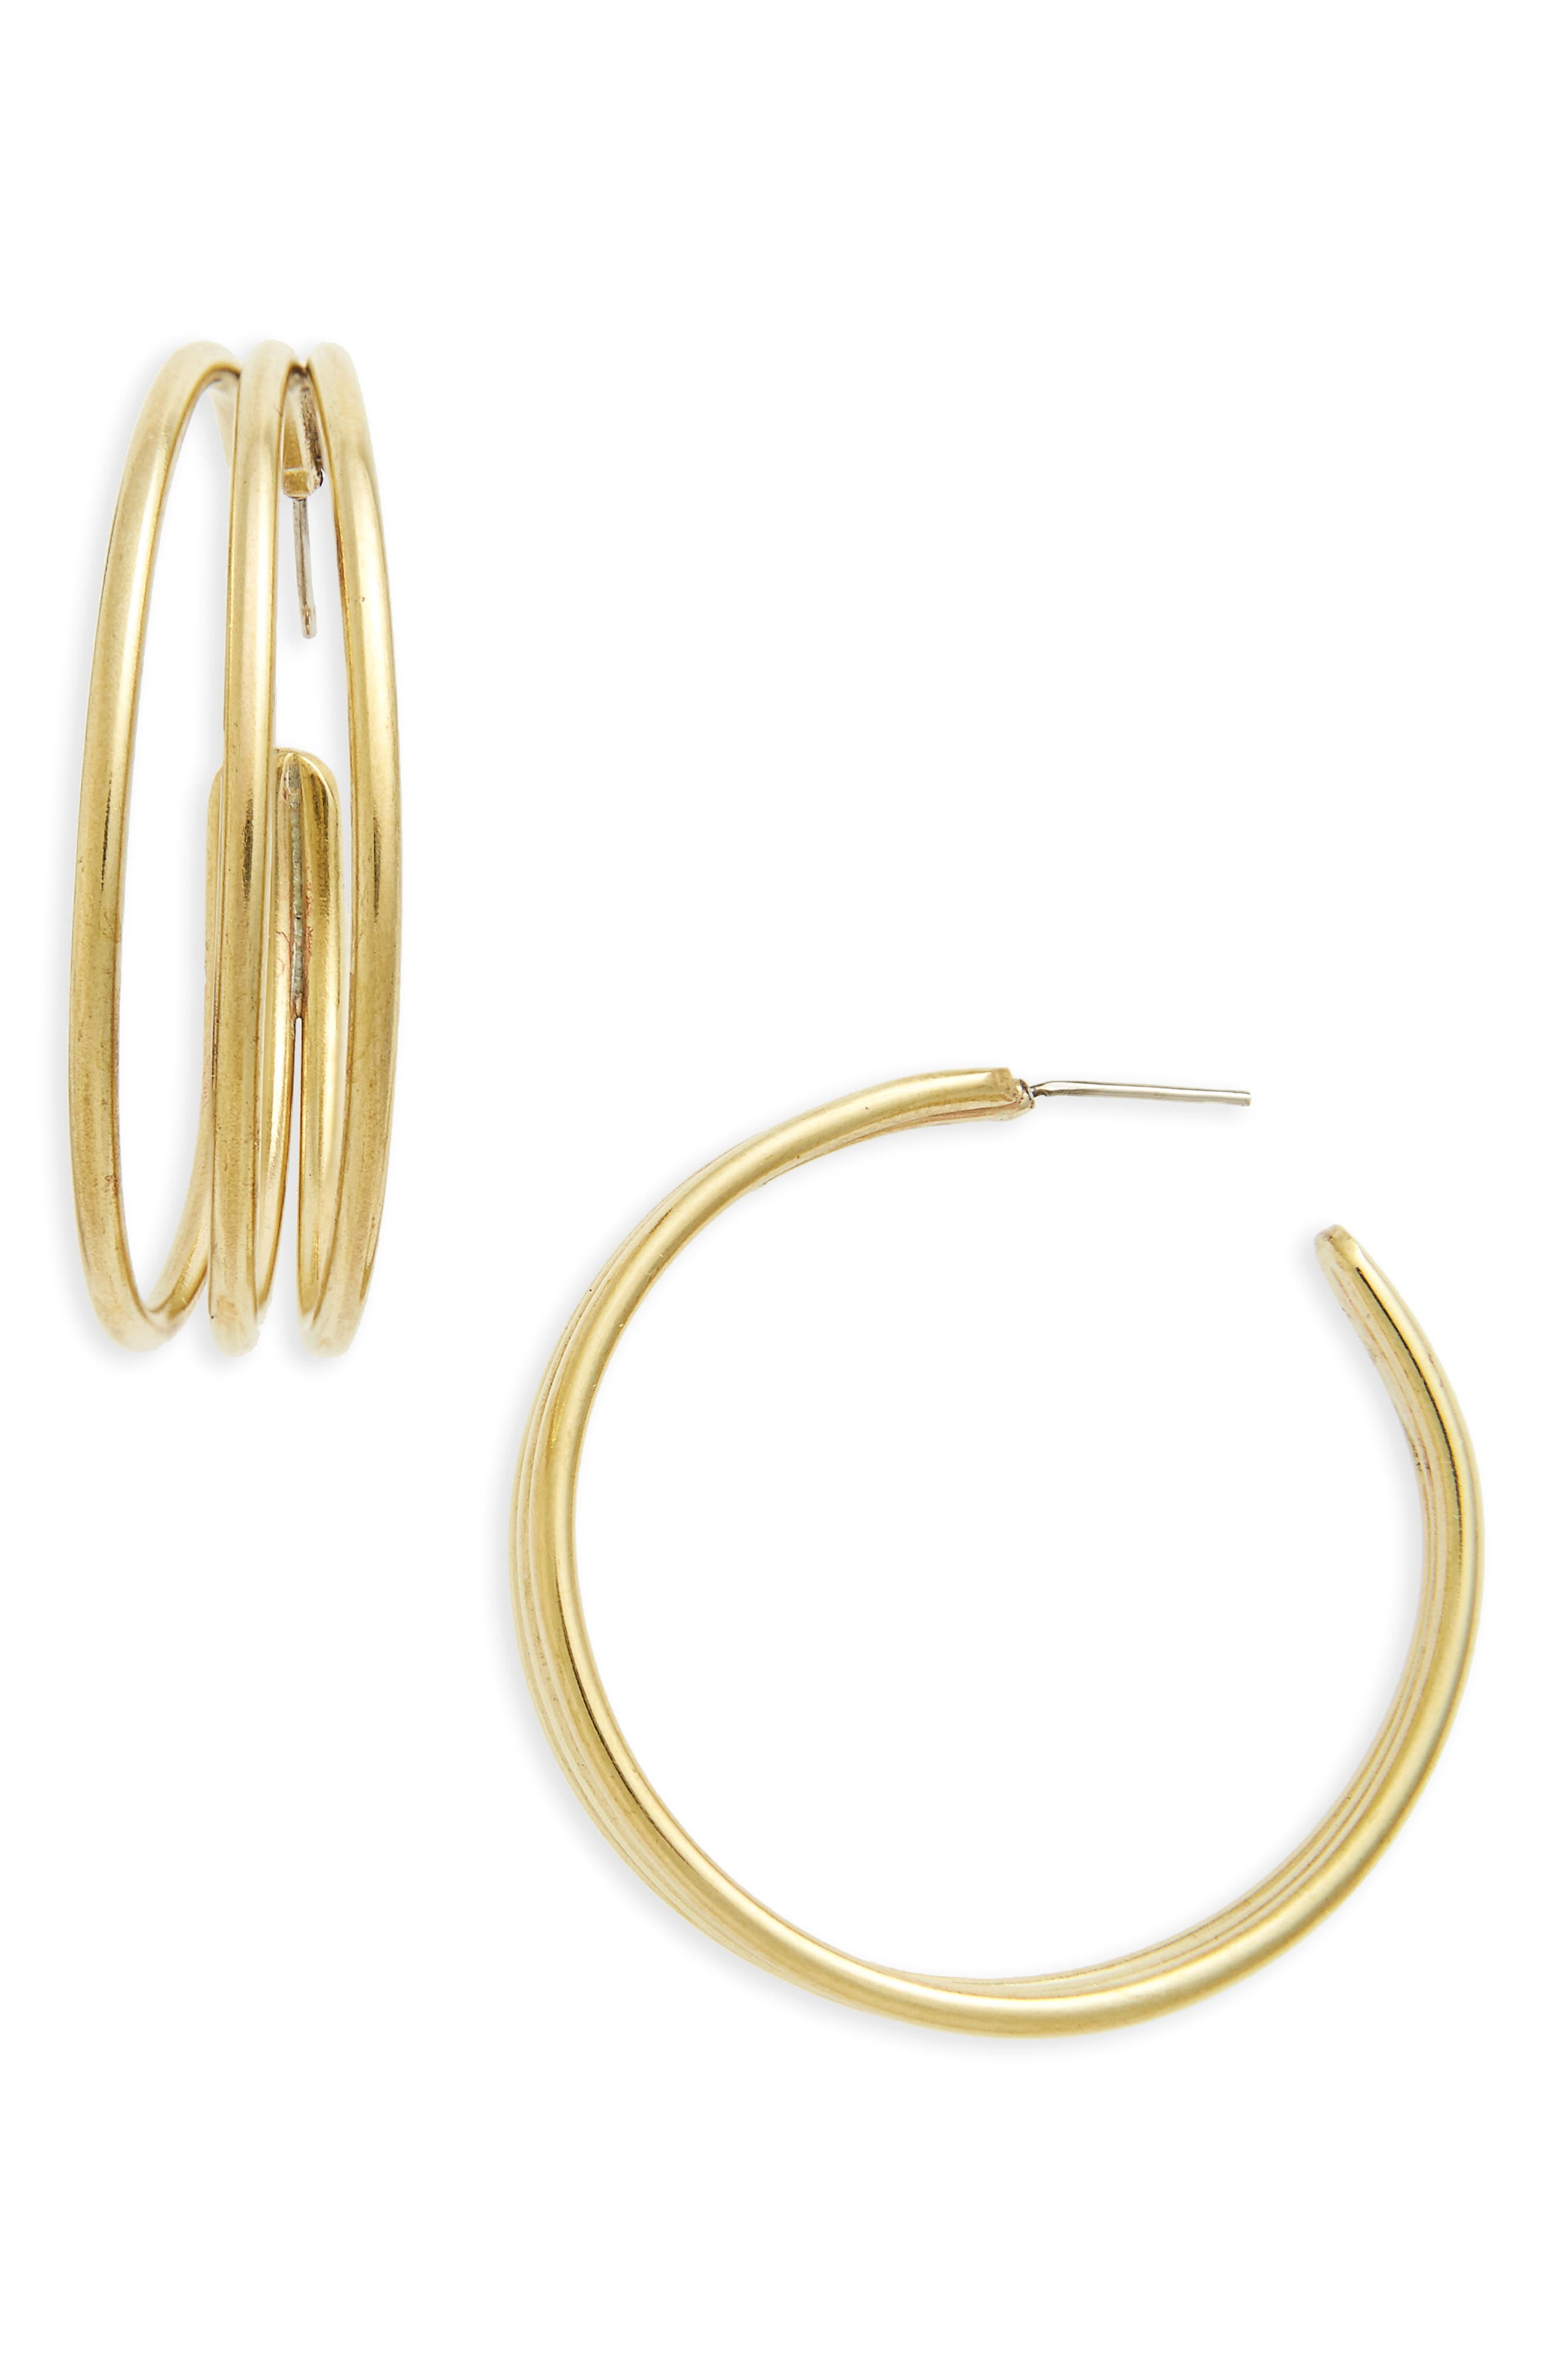 Triple Band Hoop Earrings,                         Main,                         color, Brass